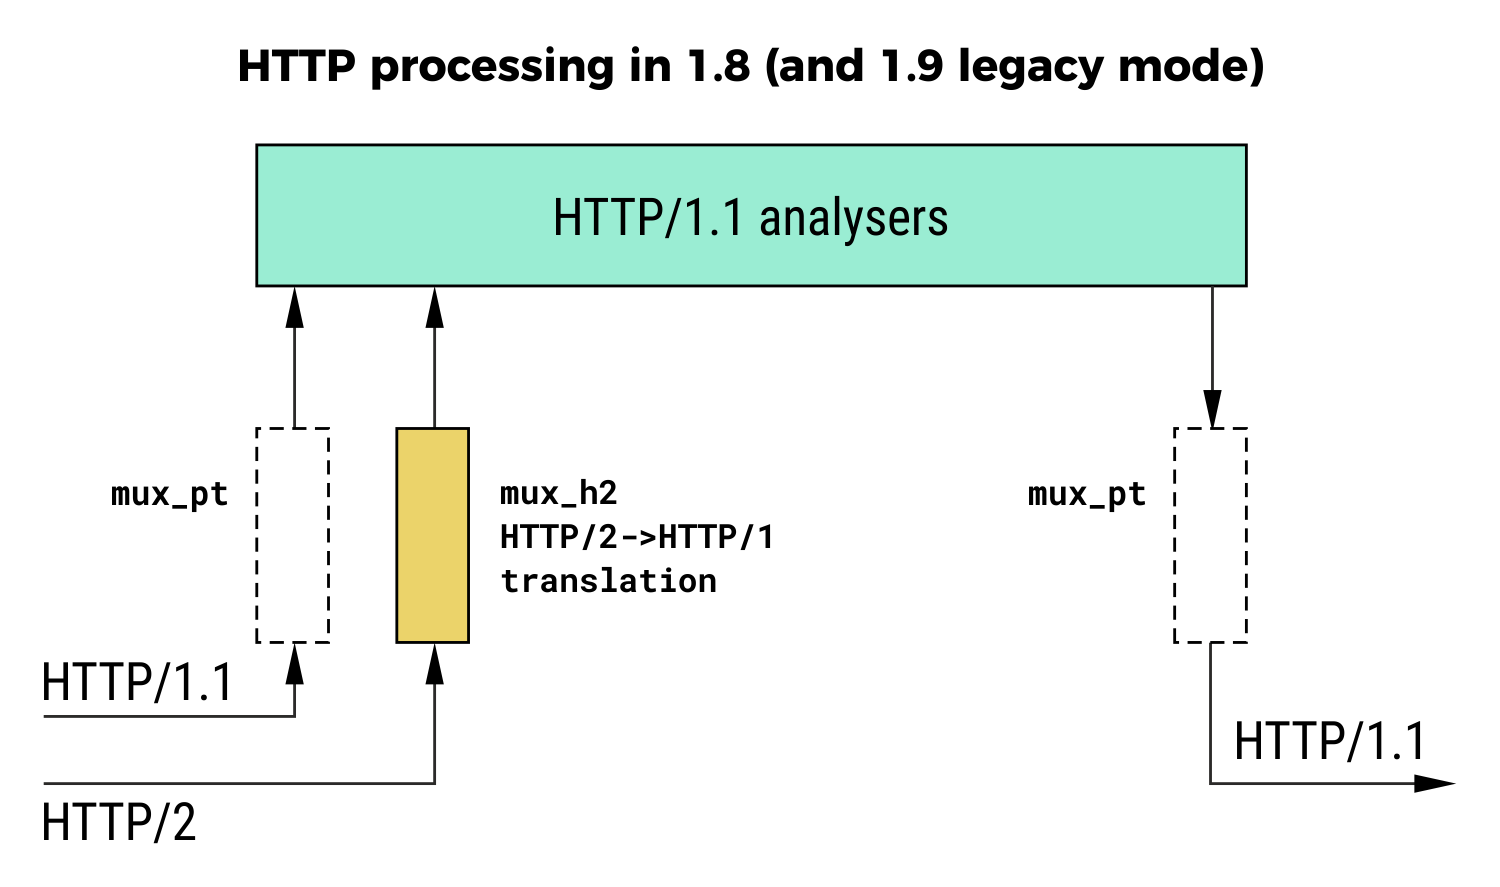 http processing in haproxy 1.8